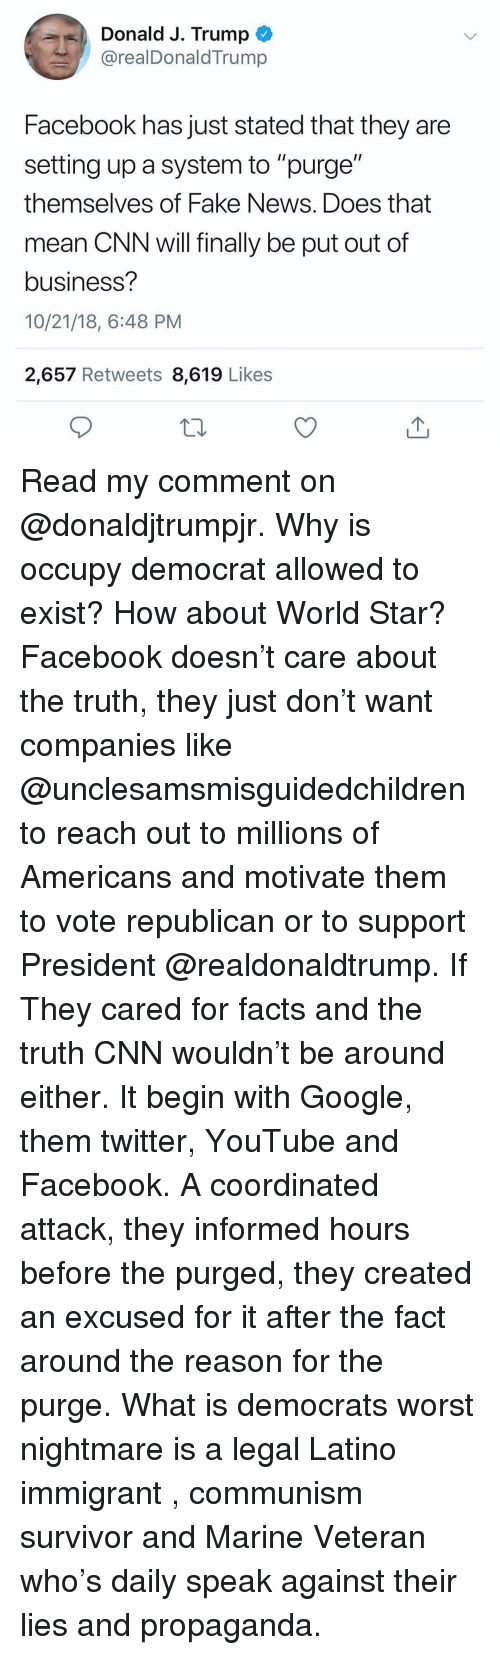 "The Purge: Donald J. Trump  @realDonaldTrump  Facebook has just stated that they are  setting up a system to ""purge""  themselves of Fake News. Does that  mean CNN will finally be put out of  business?  10/21/18, 6:48 PM  2,657 Retweets 8,619 Likes Read my comment on @donaldjtrumpjr. Why is occupy democrat allowed to exist? How about World Star? Facebook doesn't care about the truth, they just don't want companies like @unclesamsmisguidedchildren to reach out to millions of Americans and motivate them to vote republican or to support President @realdonaldtrump. If They cared for facts and the truth CNN wouldn't be around either. It begin with Google, them twitter, YouTube and Facebook. A coordinated attack, they informed hours before the purged, they created an excused for it after the fact around the reason for the purge. What is democrats worst nightmare is a legal Latino immigrant , communism survivor and Marine Veteran who's daily speak against their lies and propaganda."